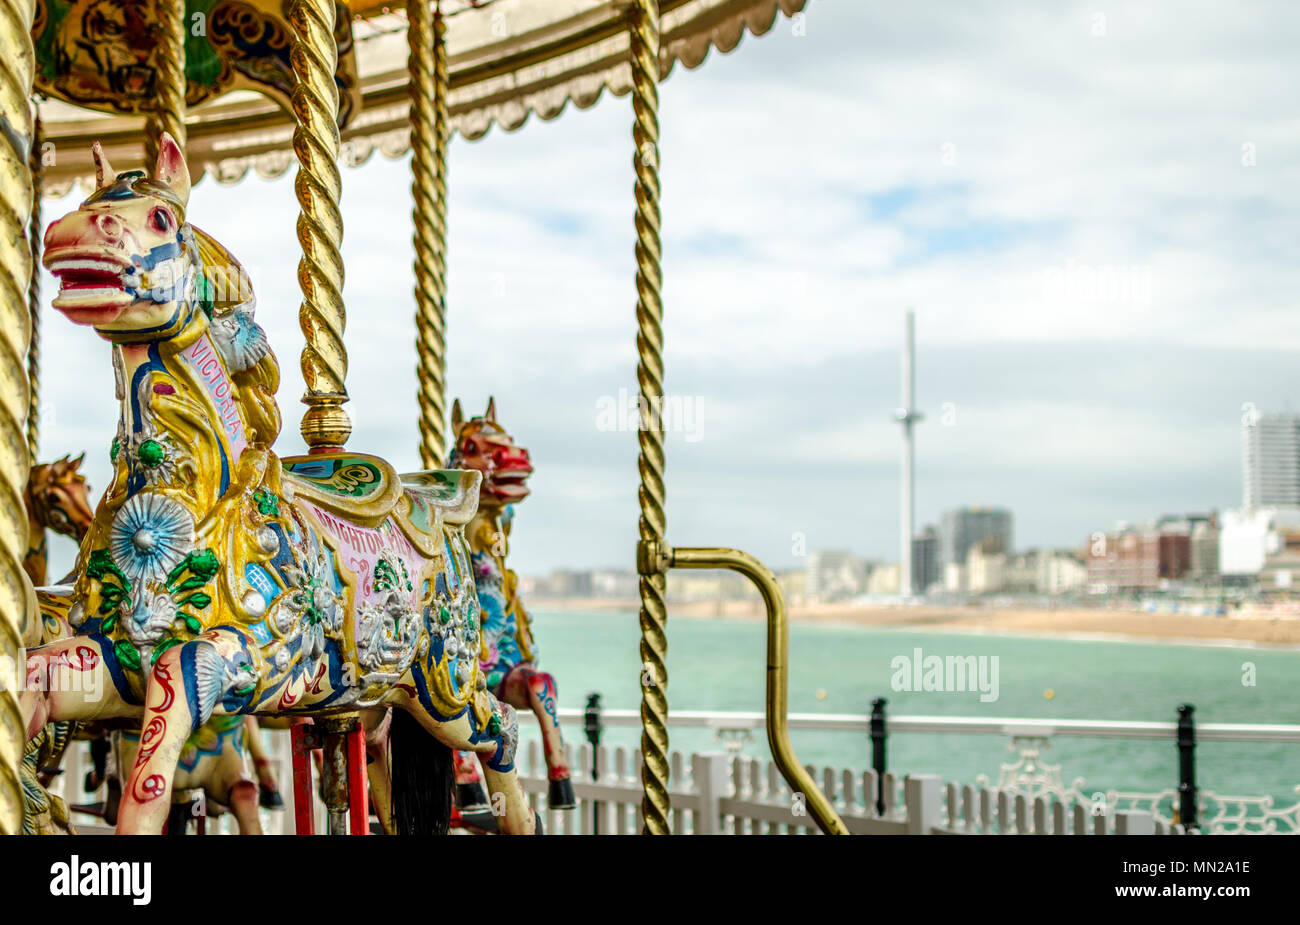 A view from Brighton Pier featuring the traditional horse carousel on the pier and the British Airways i360 observation tower in the distance. Stock Photo